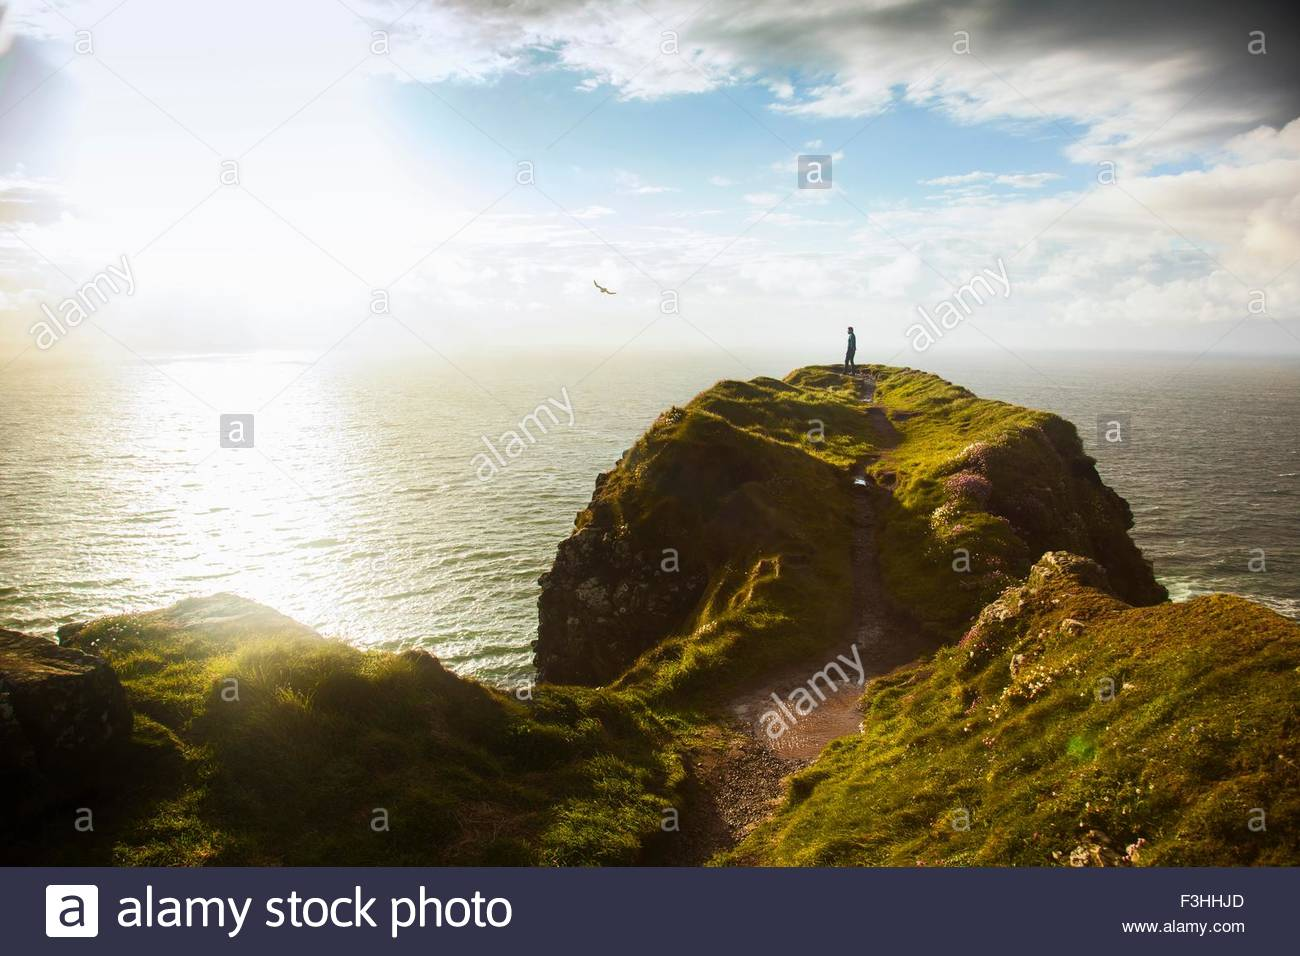 Giants Causeway, Bushmills, County Antrim, Northern Ireland, elevated view - Stock Image